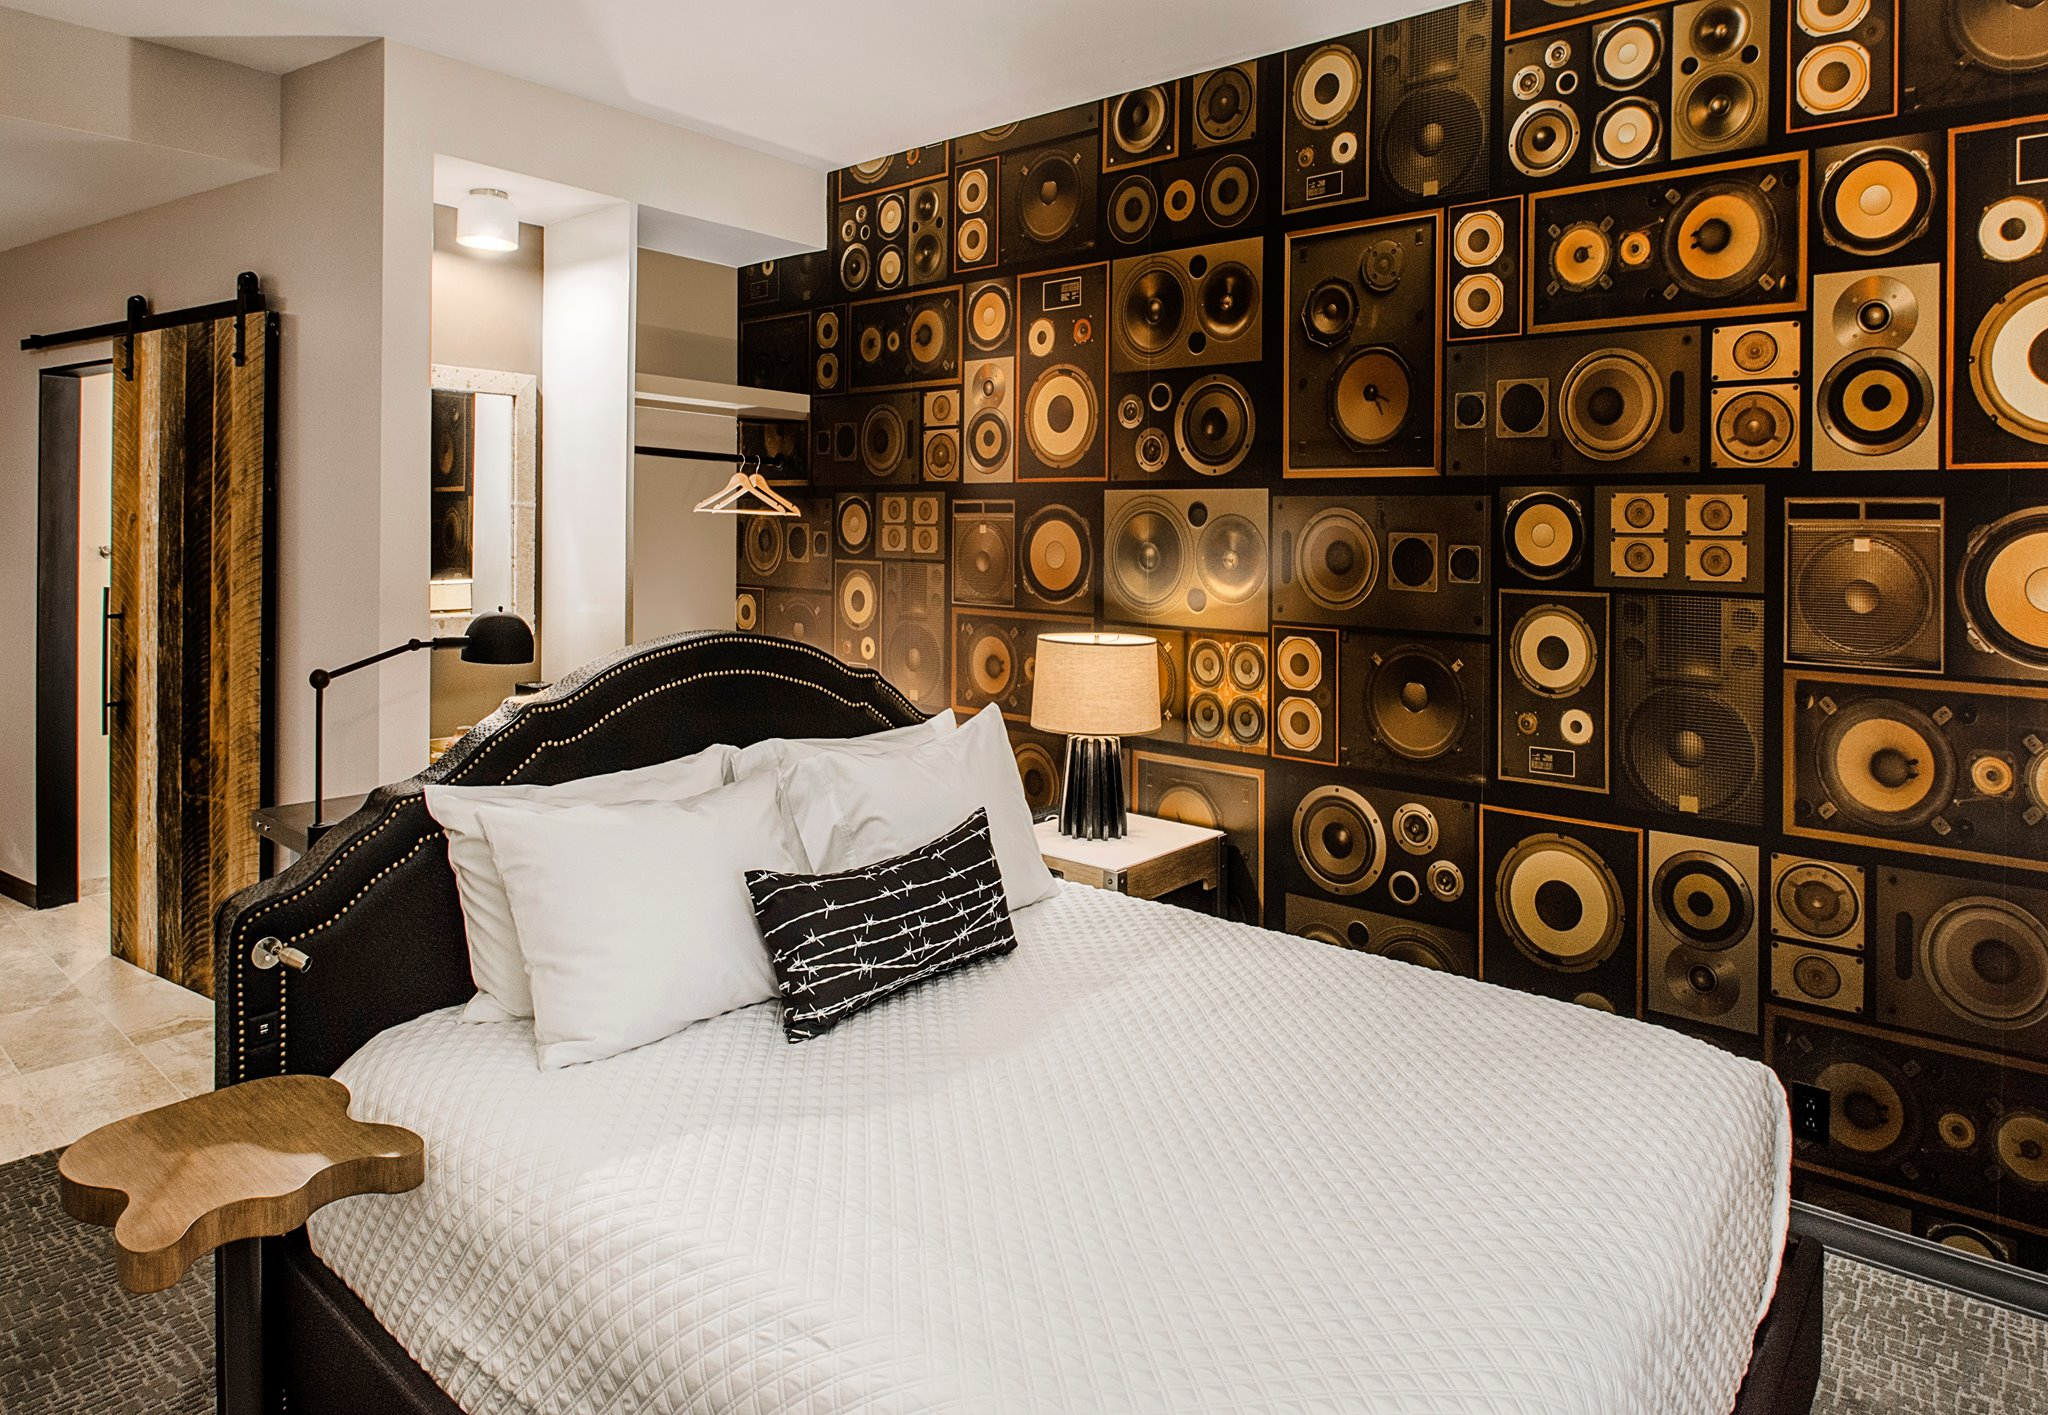 The Cambria Hotel and True Music Room - NowPlayingNashville.com